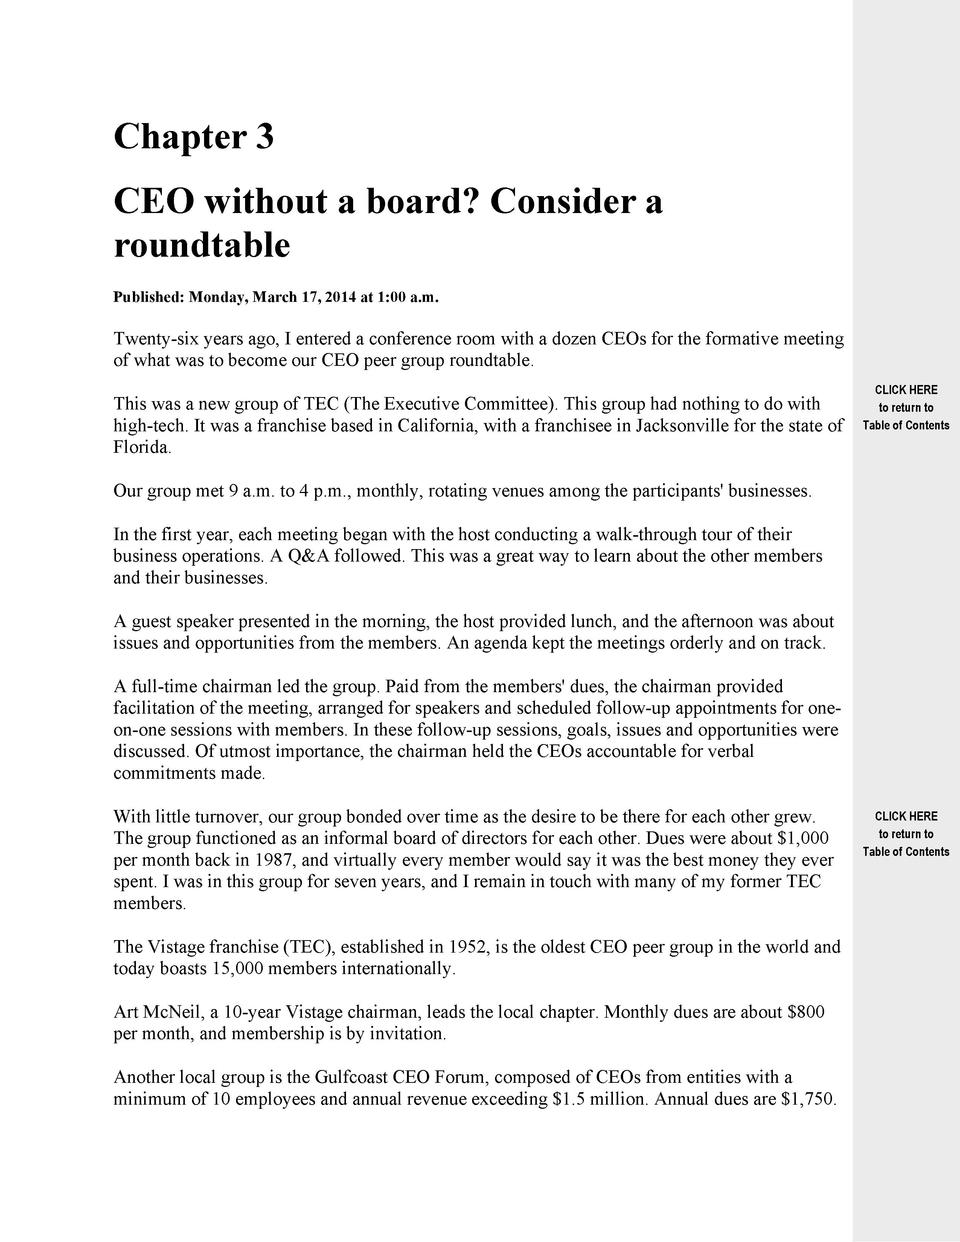 Chapter 3 CEO without a board  Consider a roundtable Published  Monday, March 17, 2014 at 1 00 a.m.  Twenty-six years ago,...